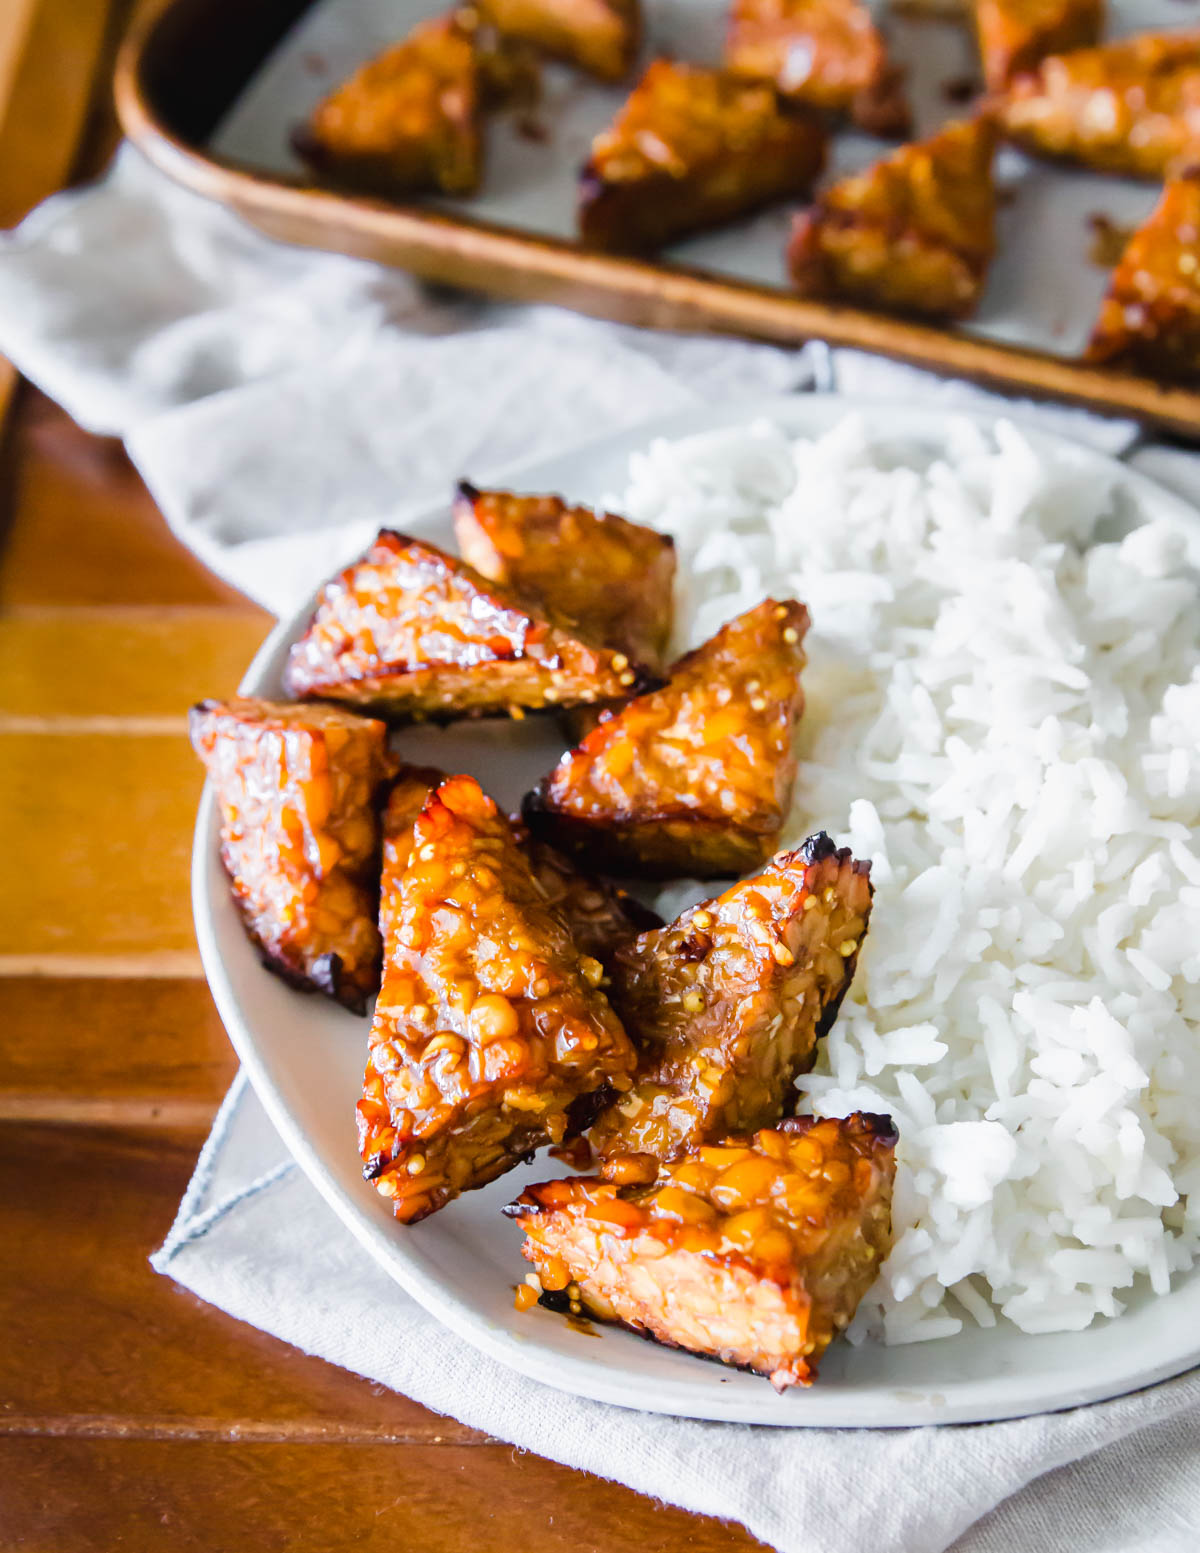 Use this easy tempeh marinade to make super flavorful and crispy oven baked tempeh as the base for any delicious plant based meal.